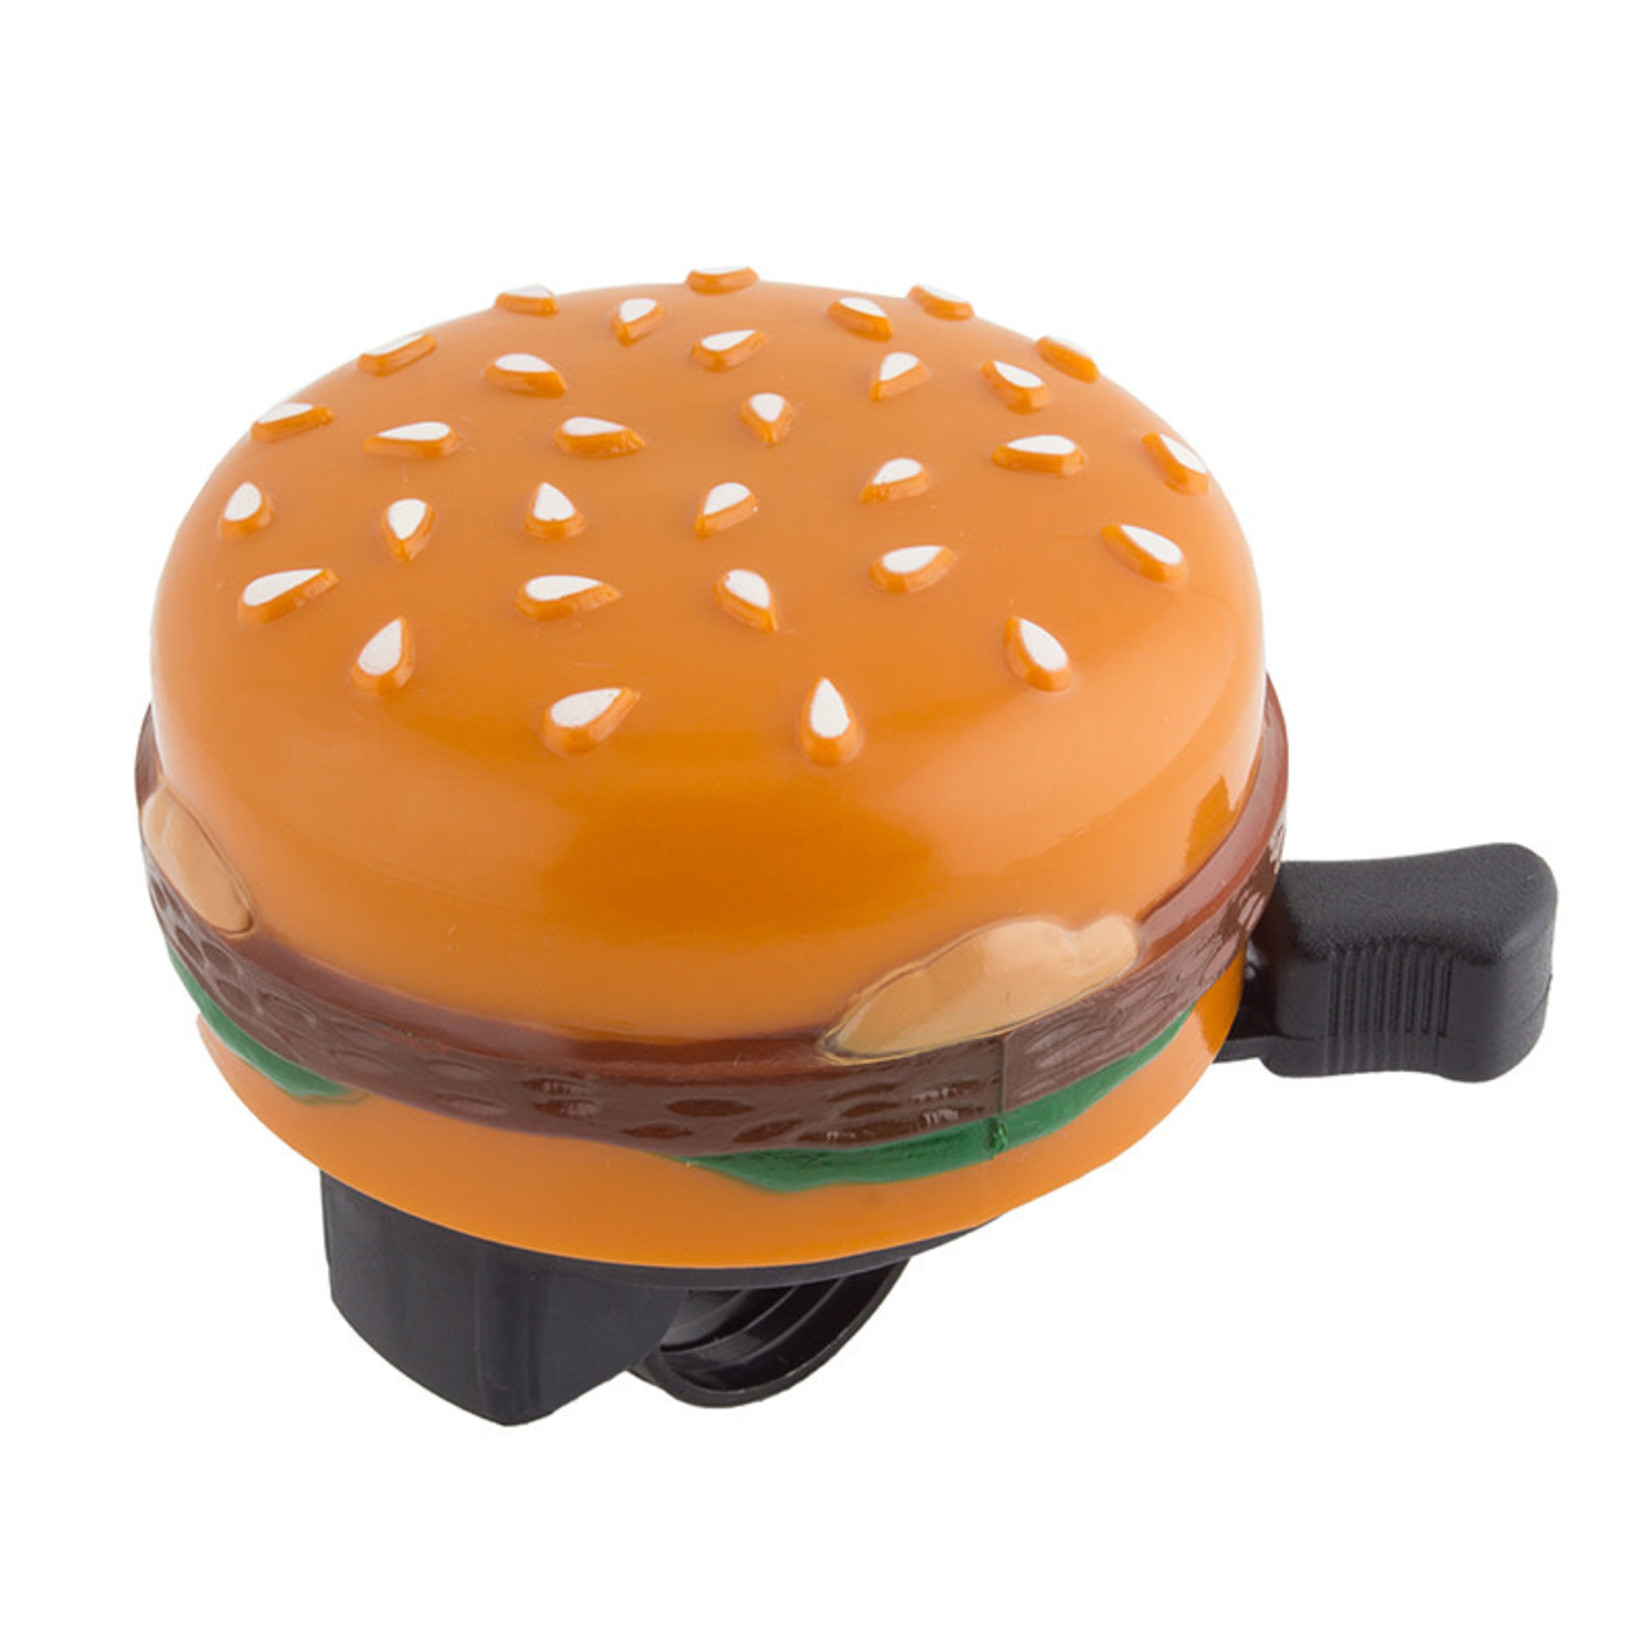 SUNLITE BELL SUNLT QUARTER POUNDER WITH BACON HOLD THE TOMATOES